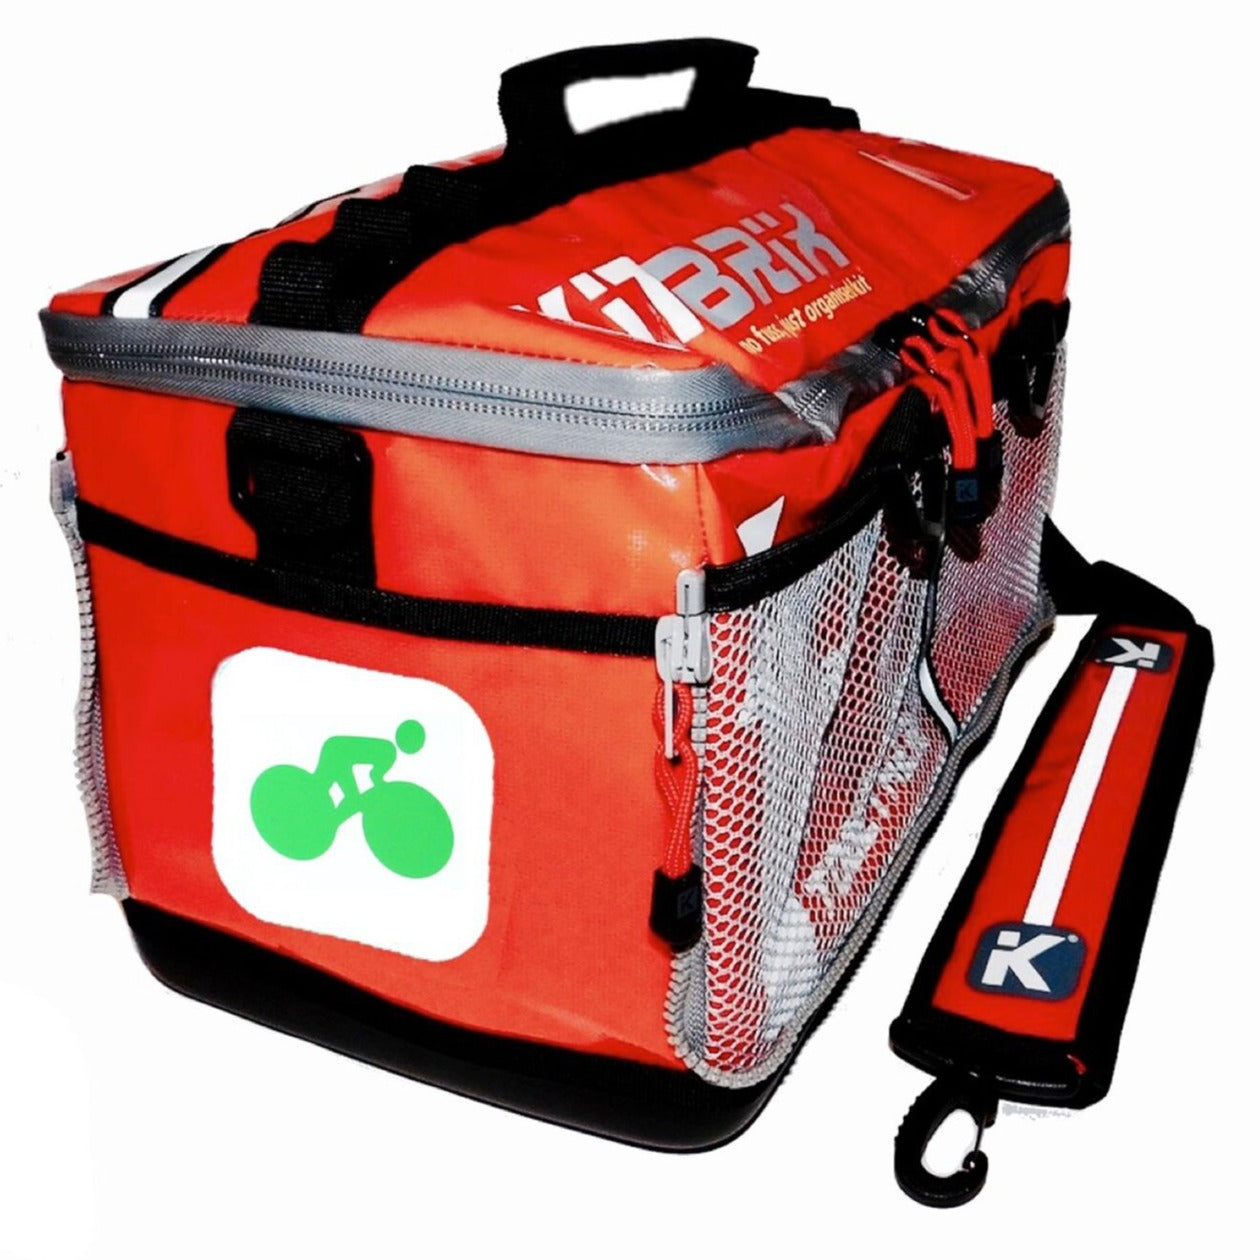 KitBrix Kit Bag - Red